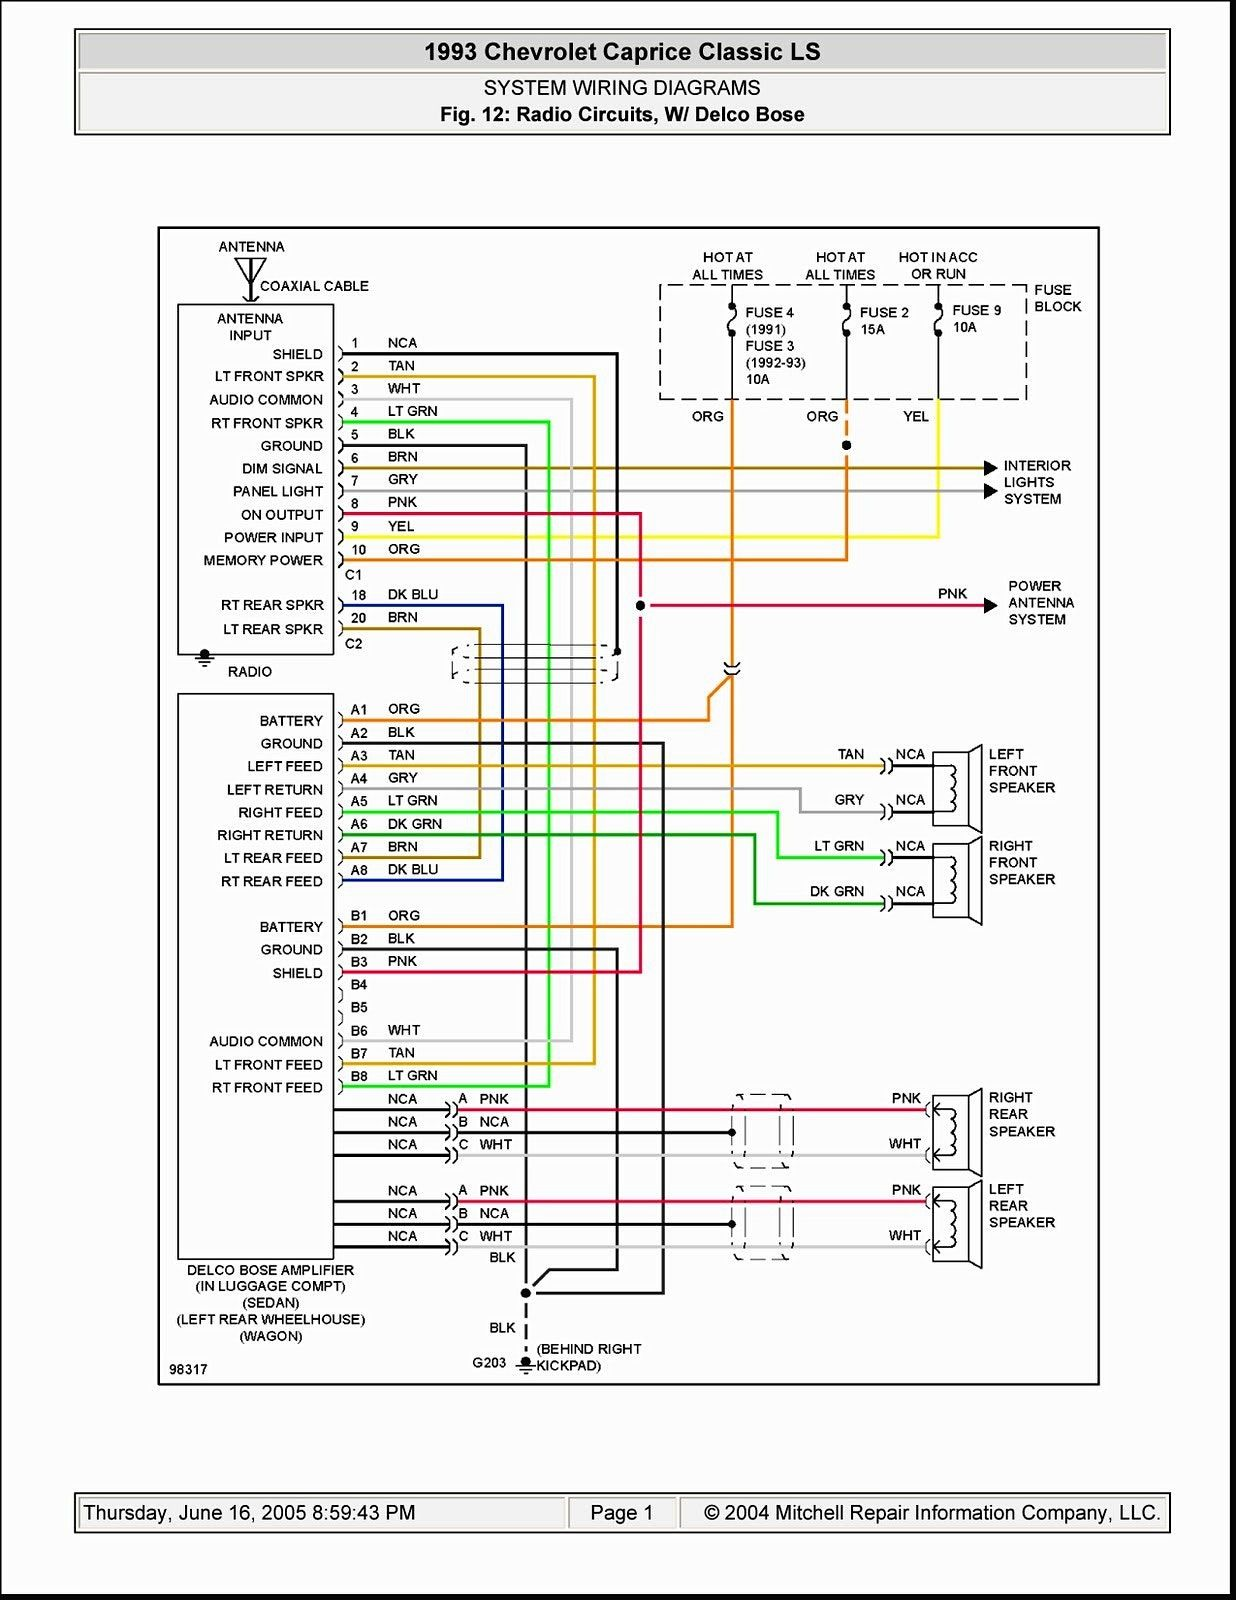 [DIAGRAM_3ER]  Renault Trafic Radio Wiring Diagram In 94 Ford Ranger Sevimliler | Jurnal,  Proposal | 94 Lincoln Continental 3 8l Wiring Diagram |  | Pinterest